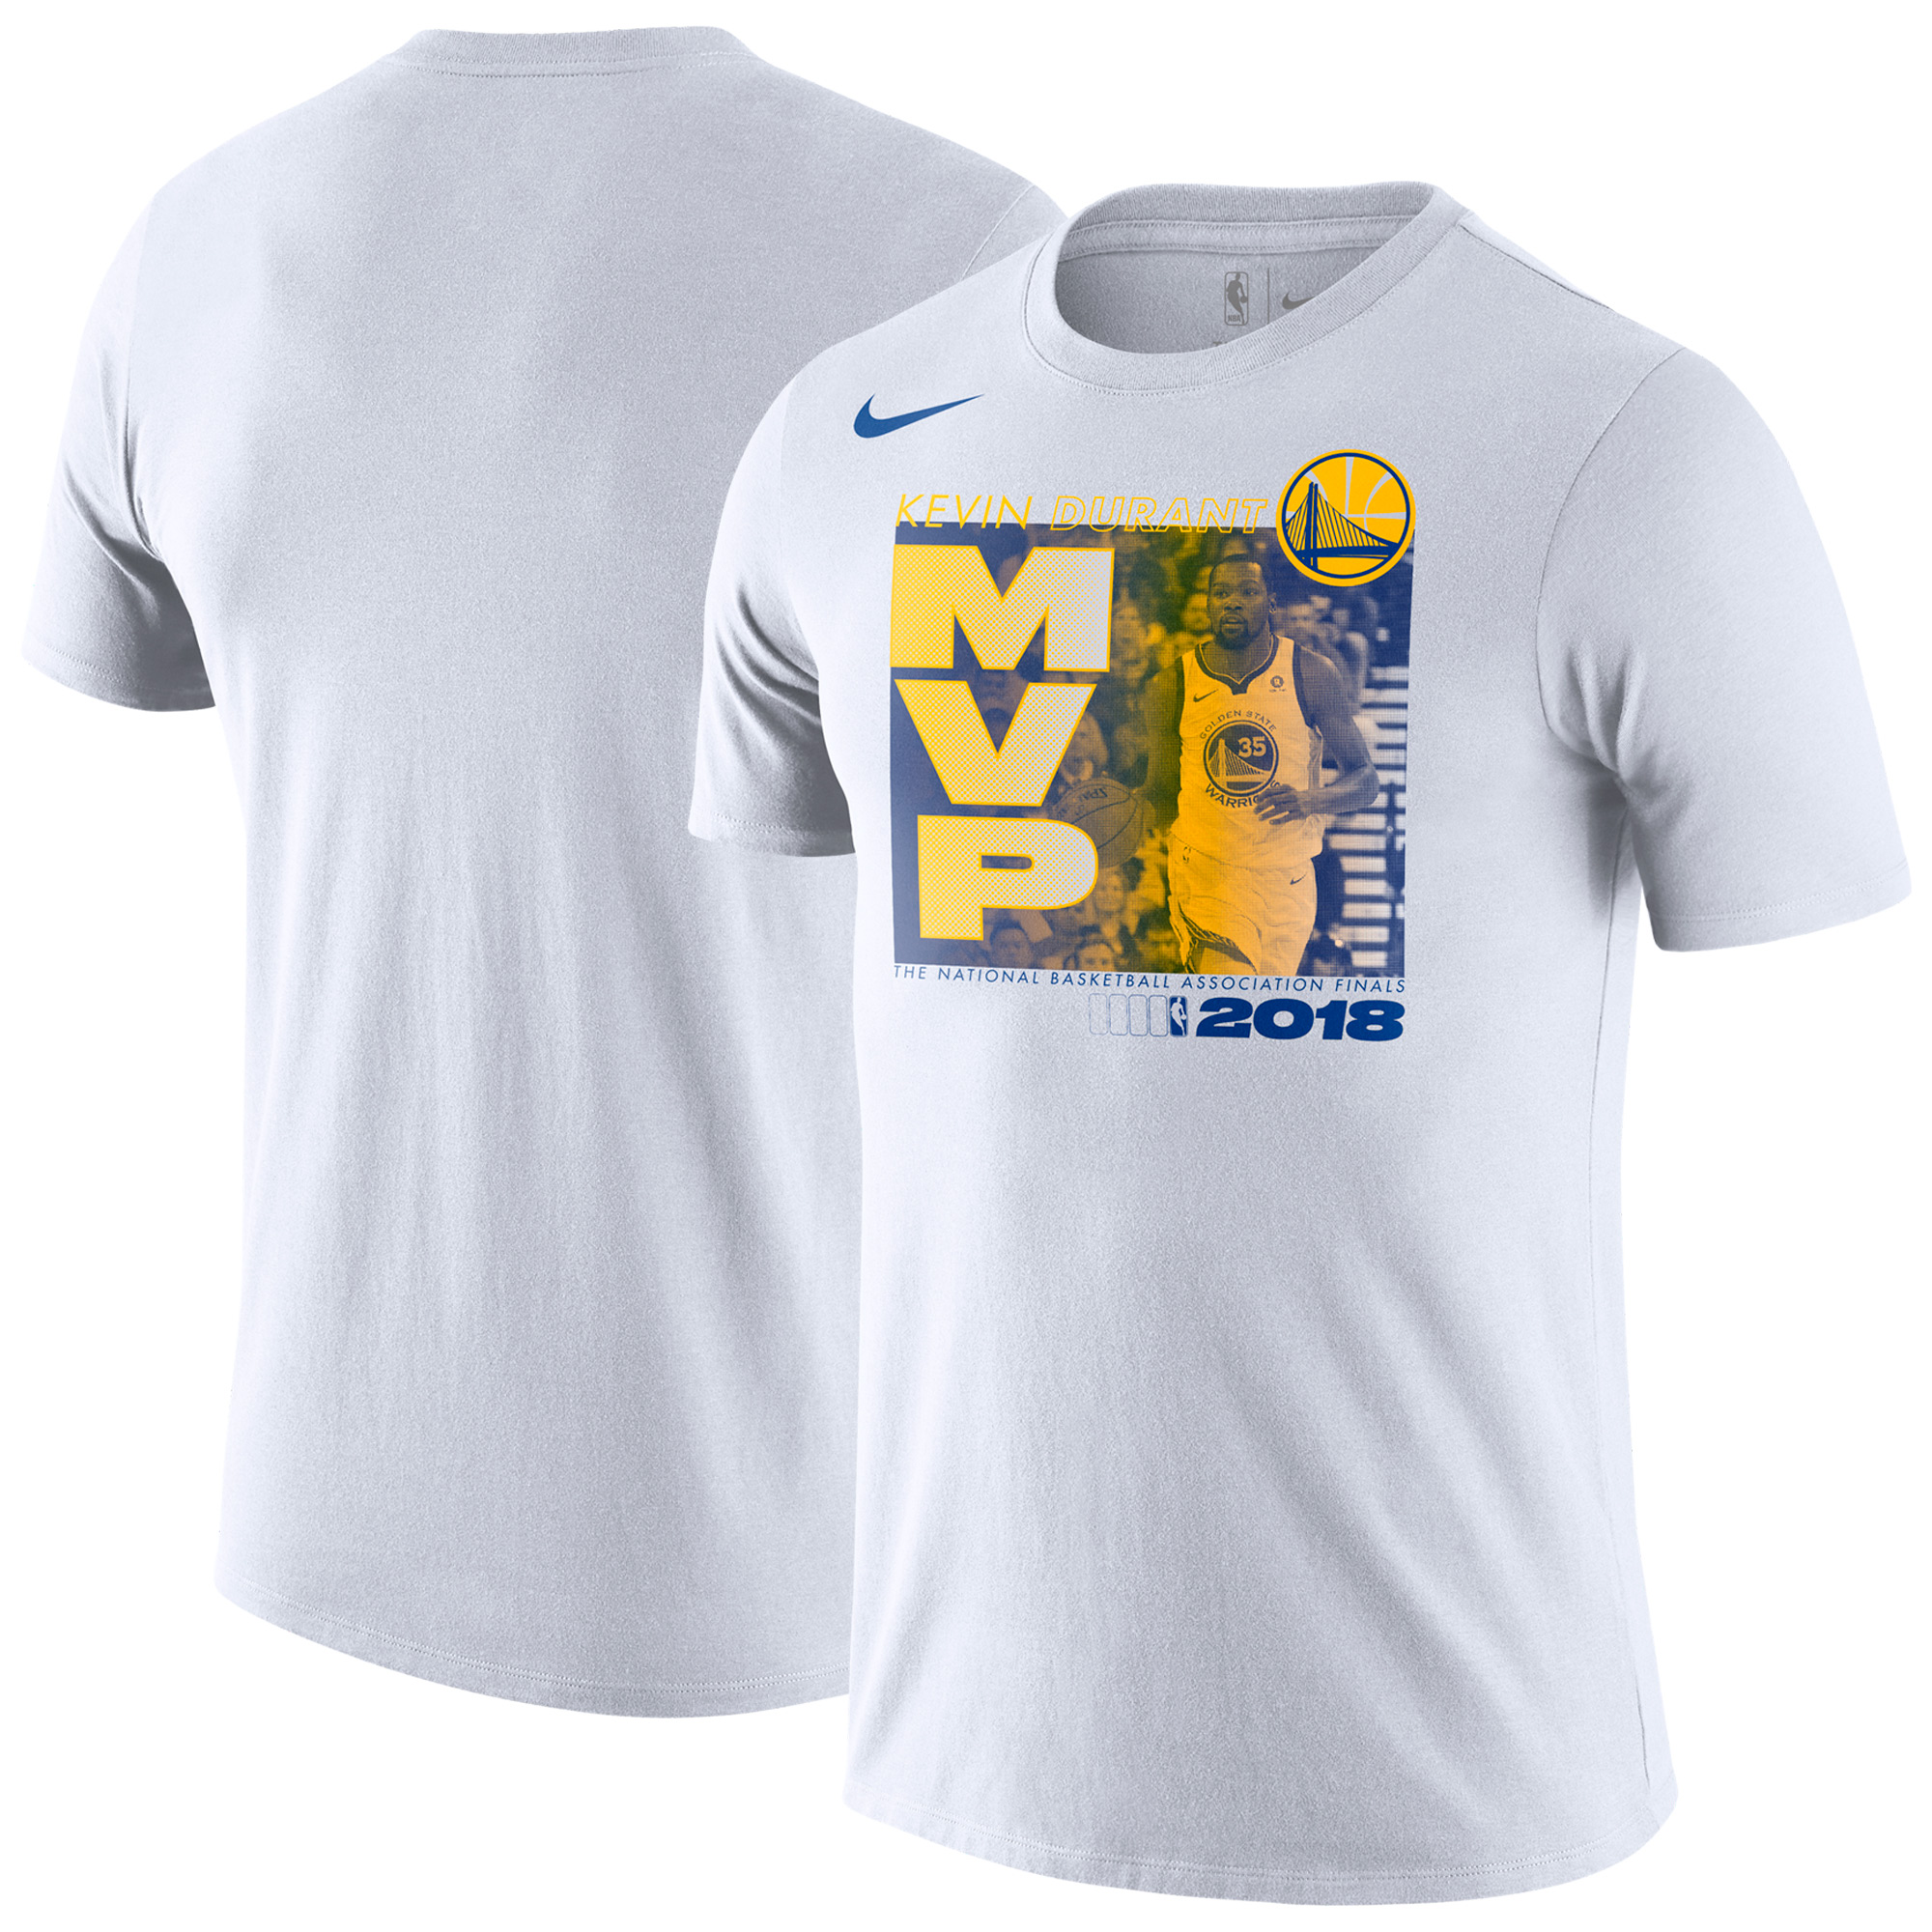 Kevin Durant Golden State Warriors Nike Youth 2018 NBA Finals Champions MVP Graphic T-Shirt - White